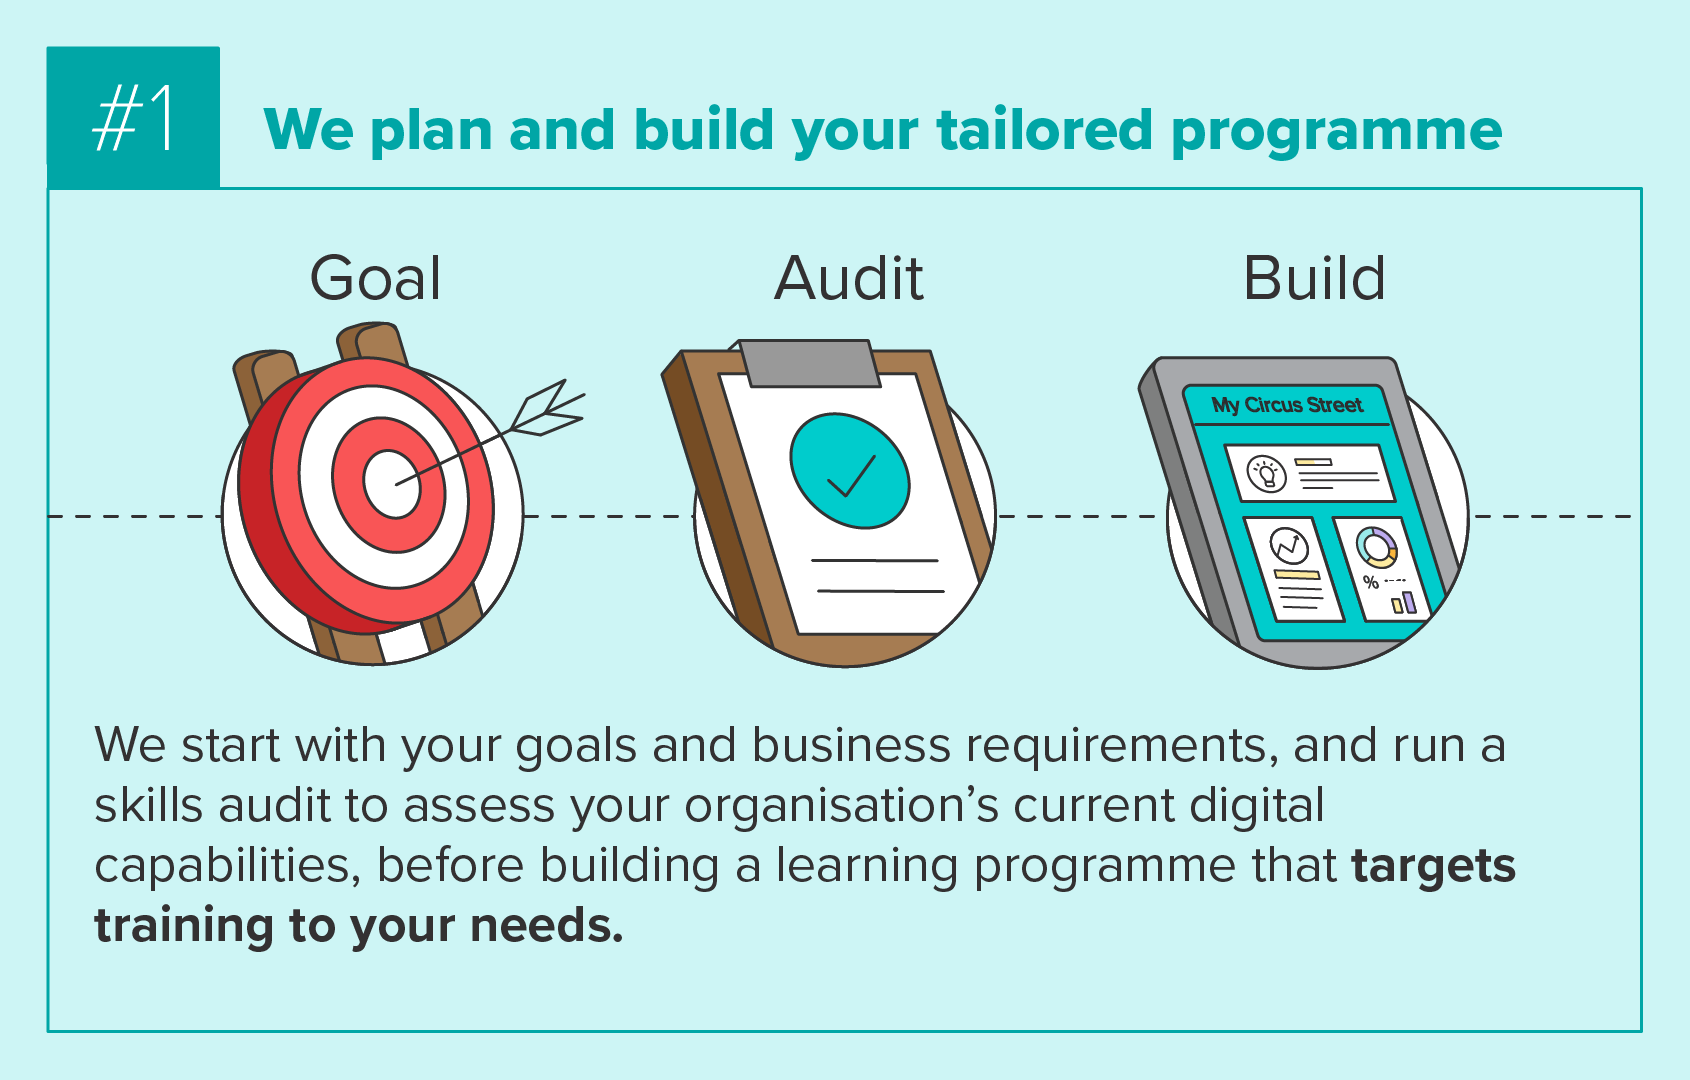 Planning and building a tailored programme